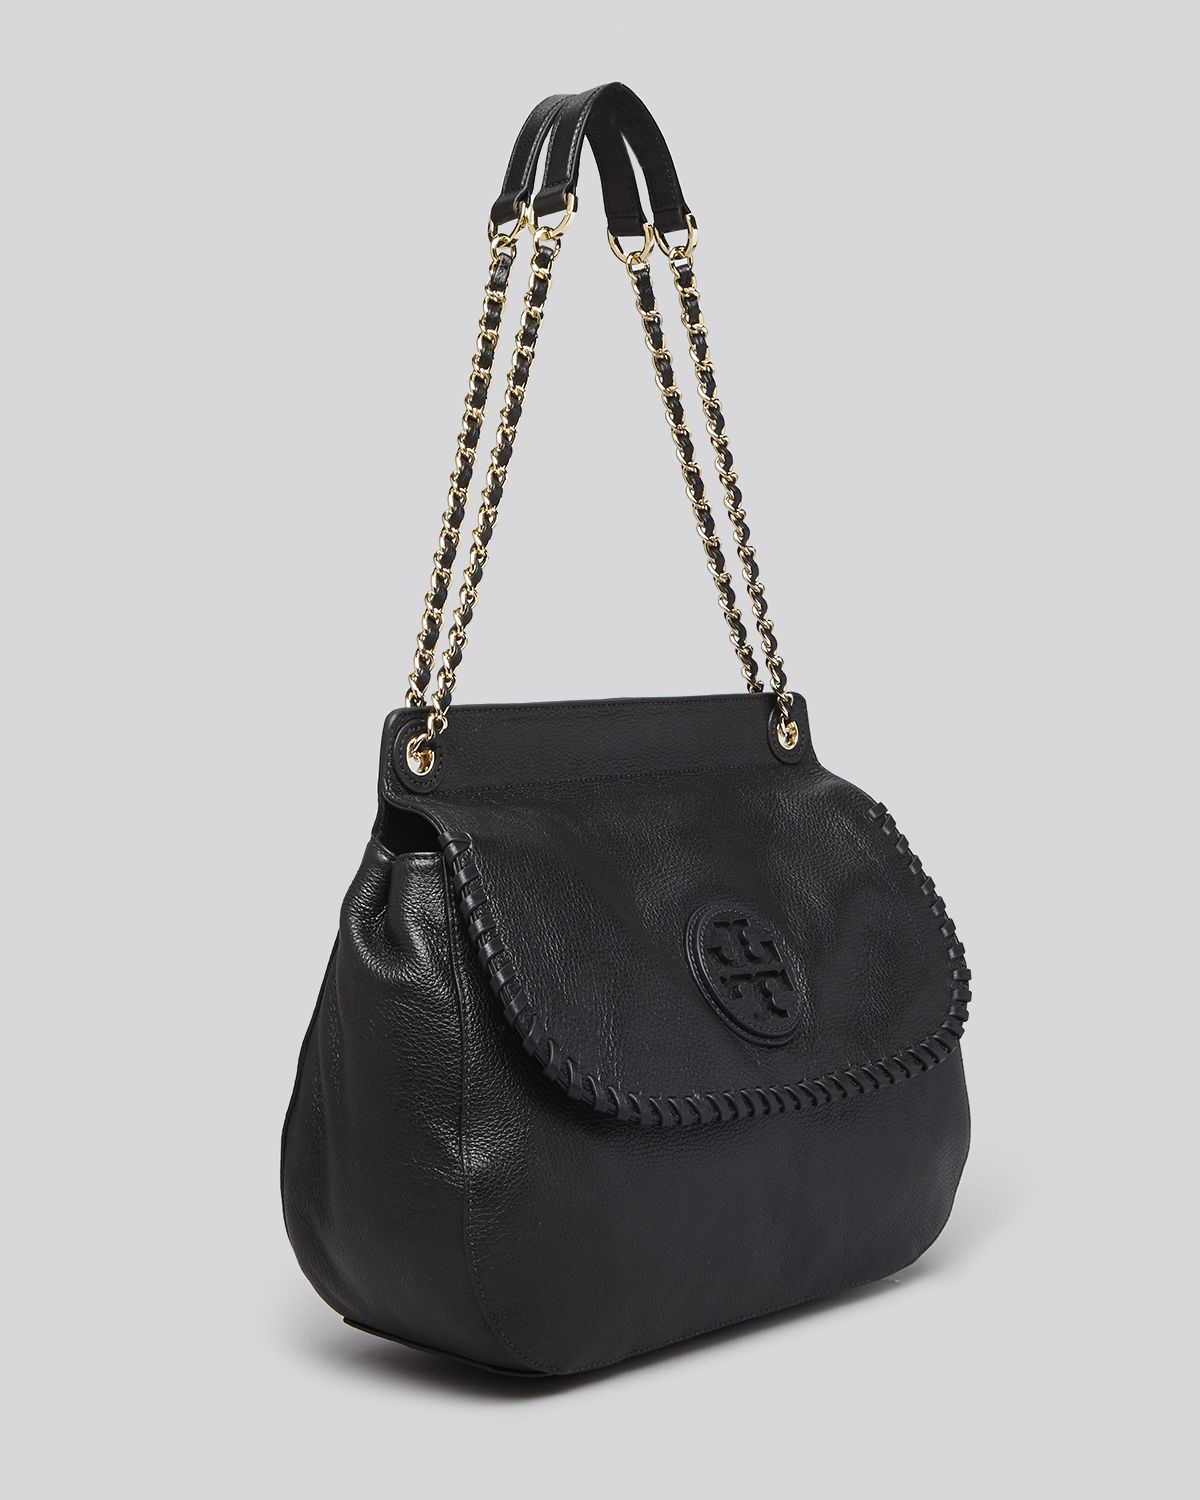 Gallery Previously Sold At Bloomingdale S Women Saddle Bags Tory Burch Marion